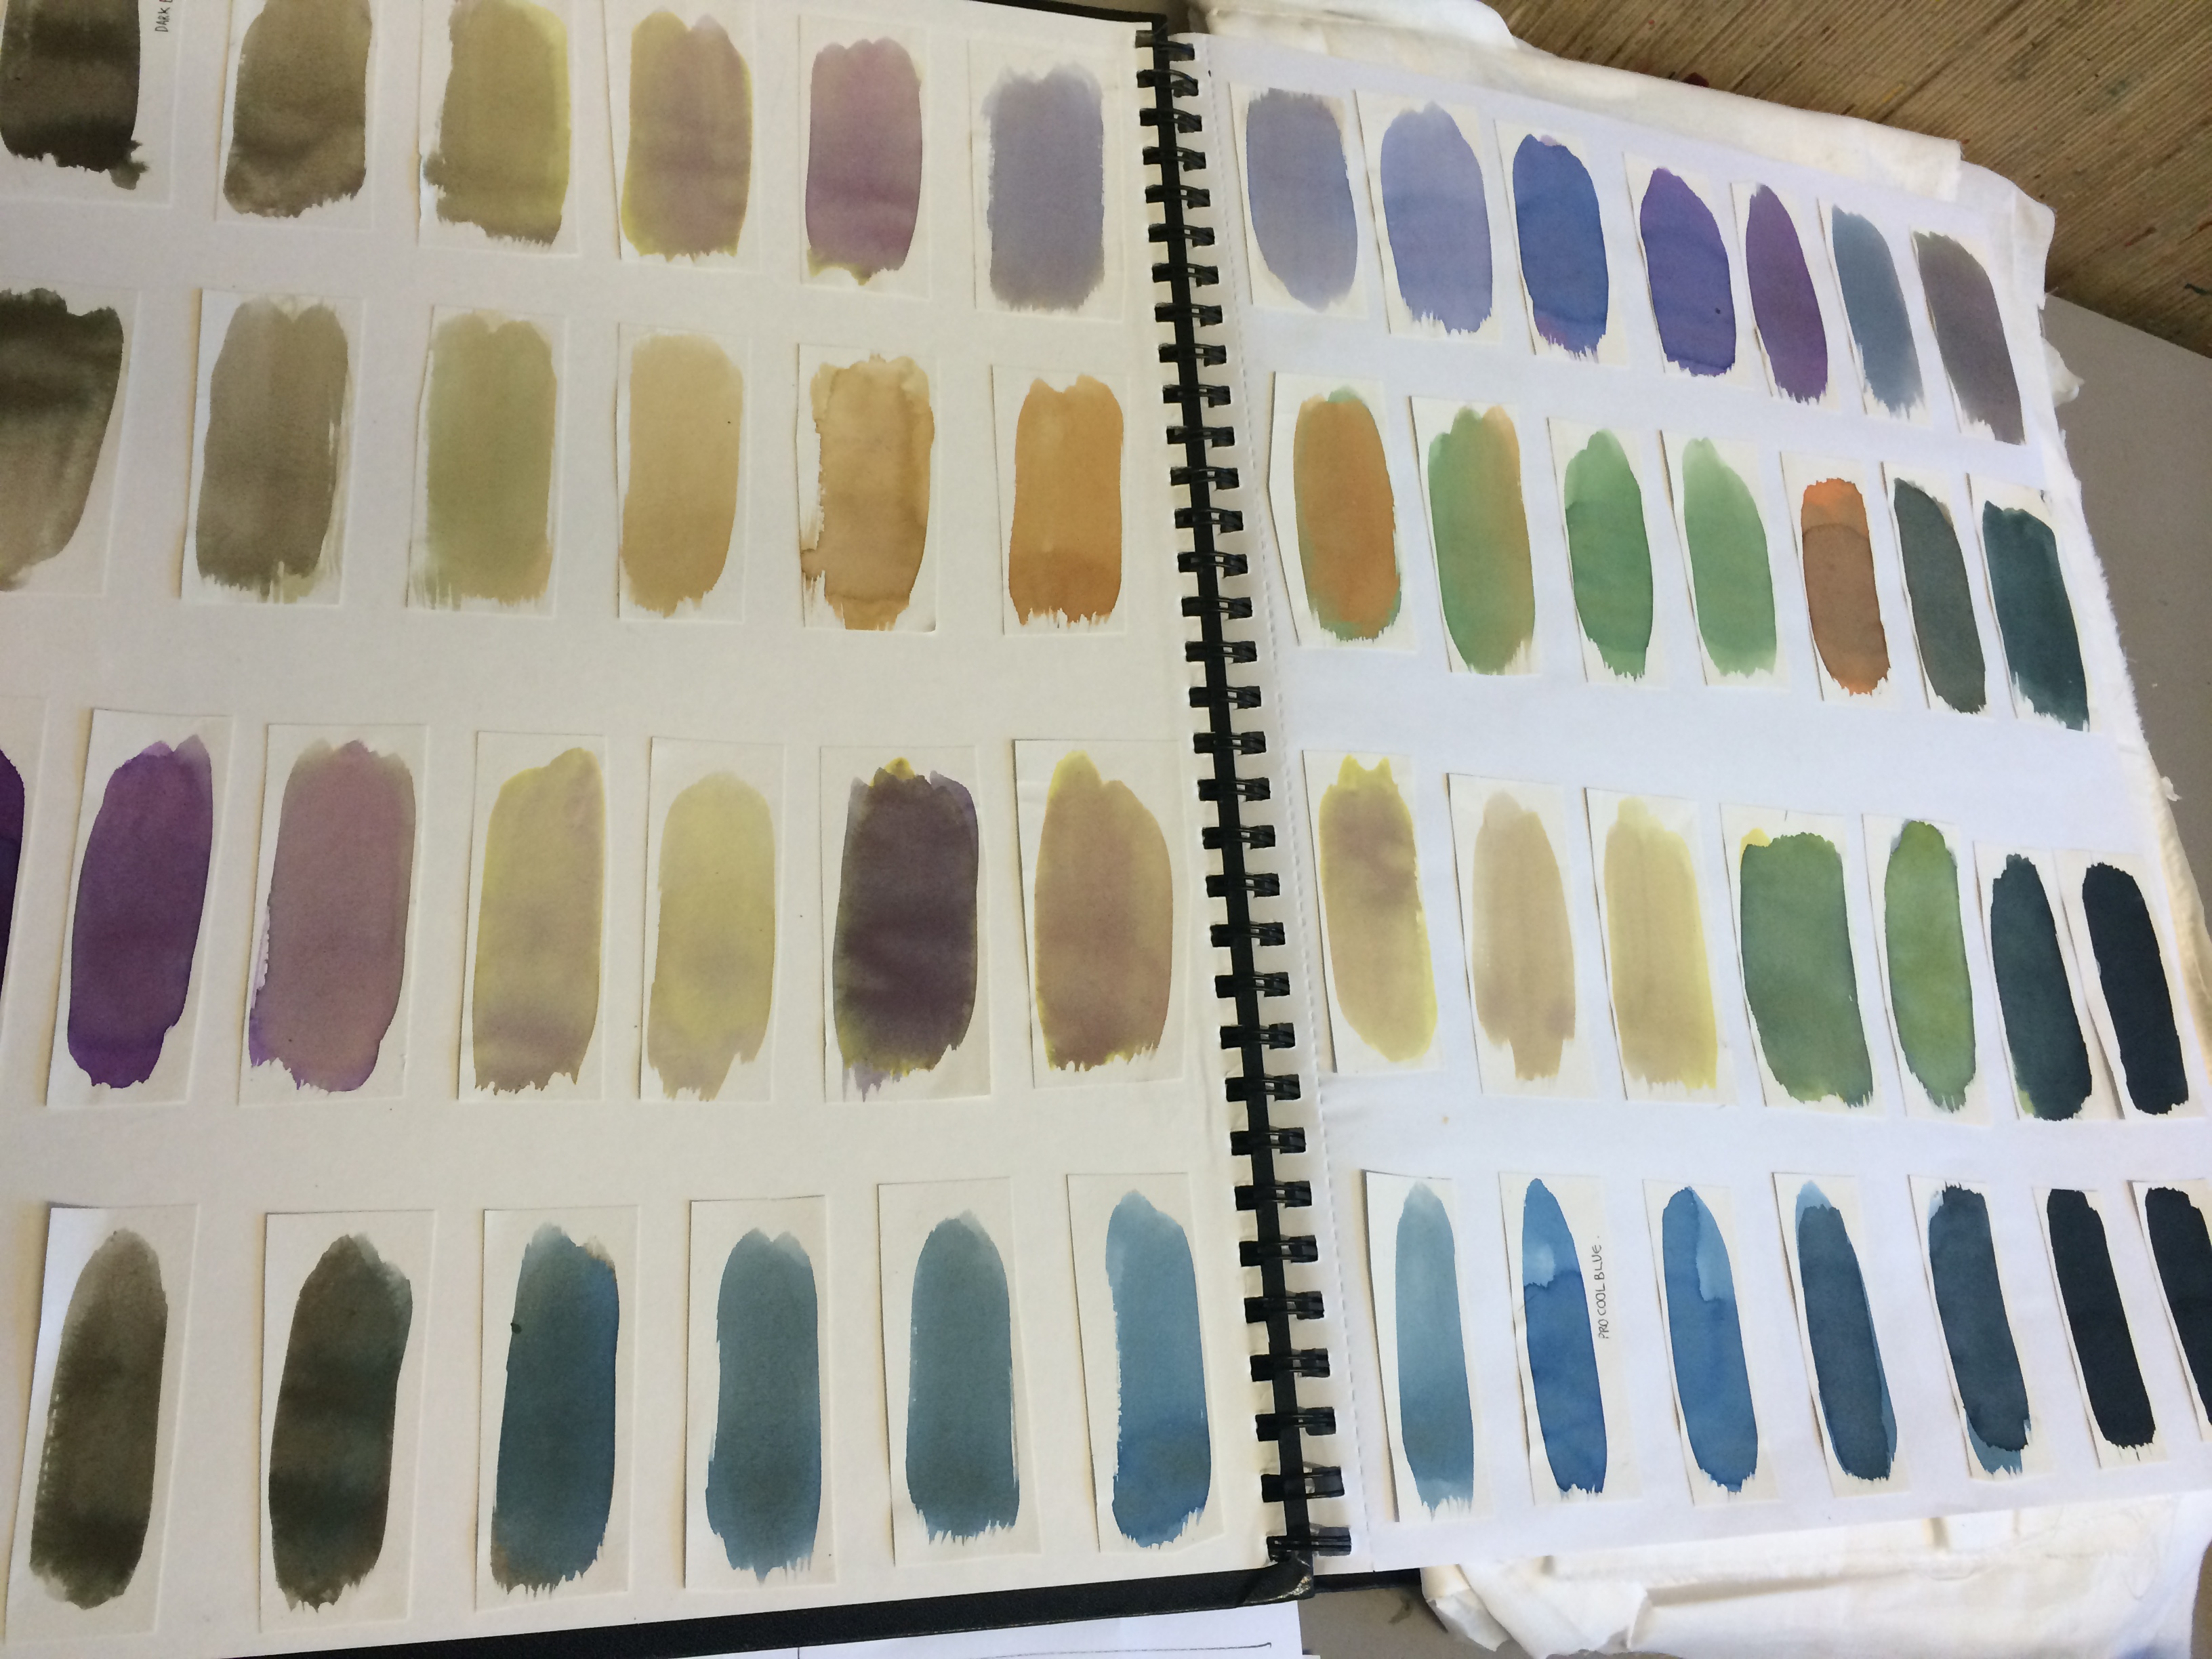 Doing a colour analysis